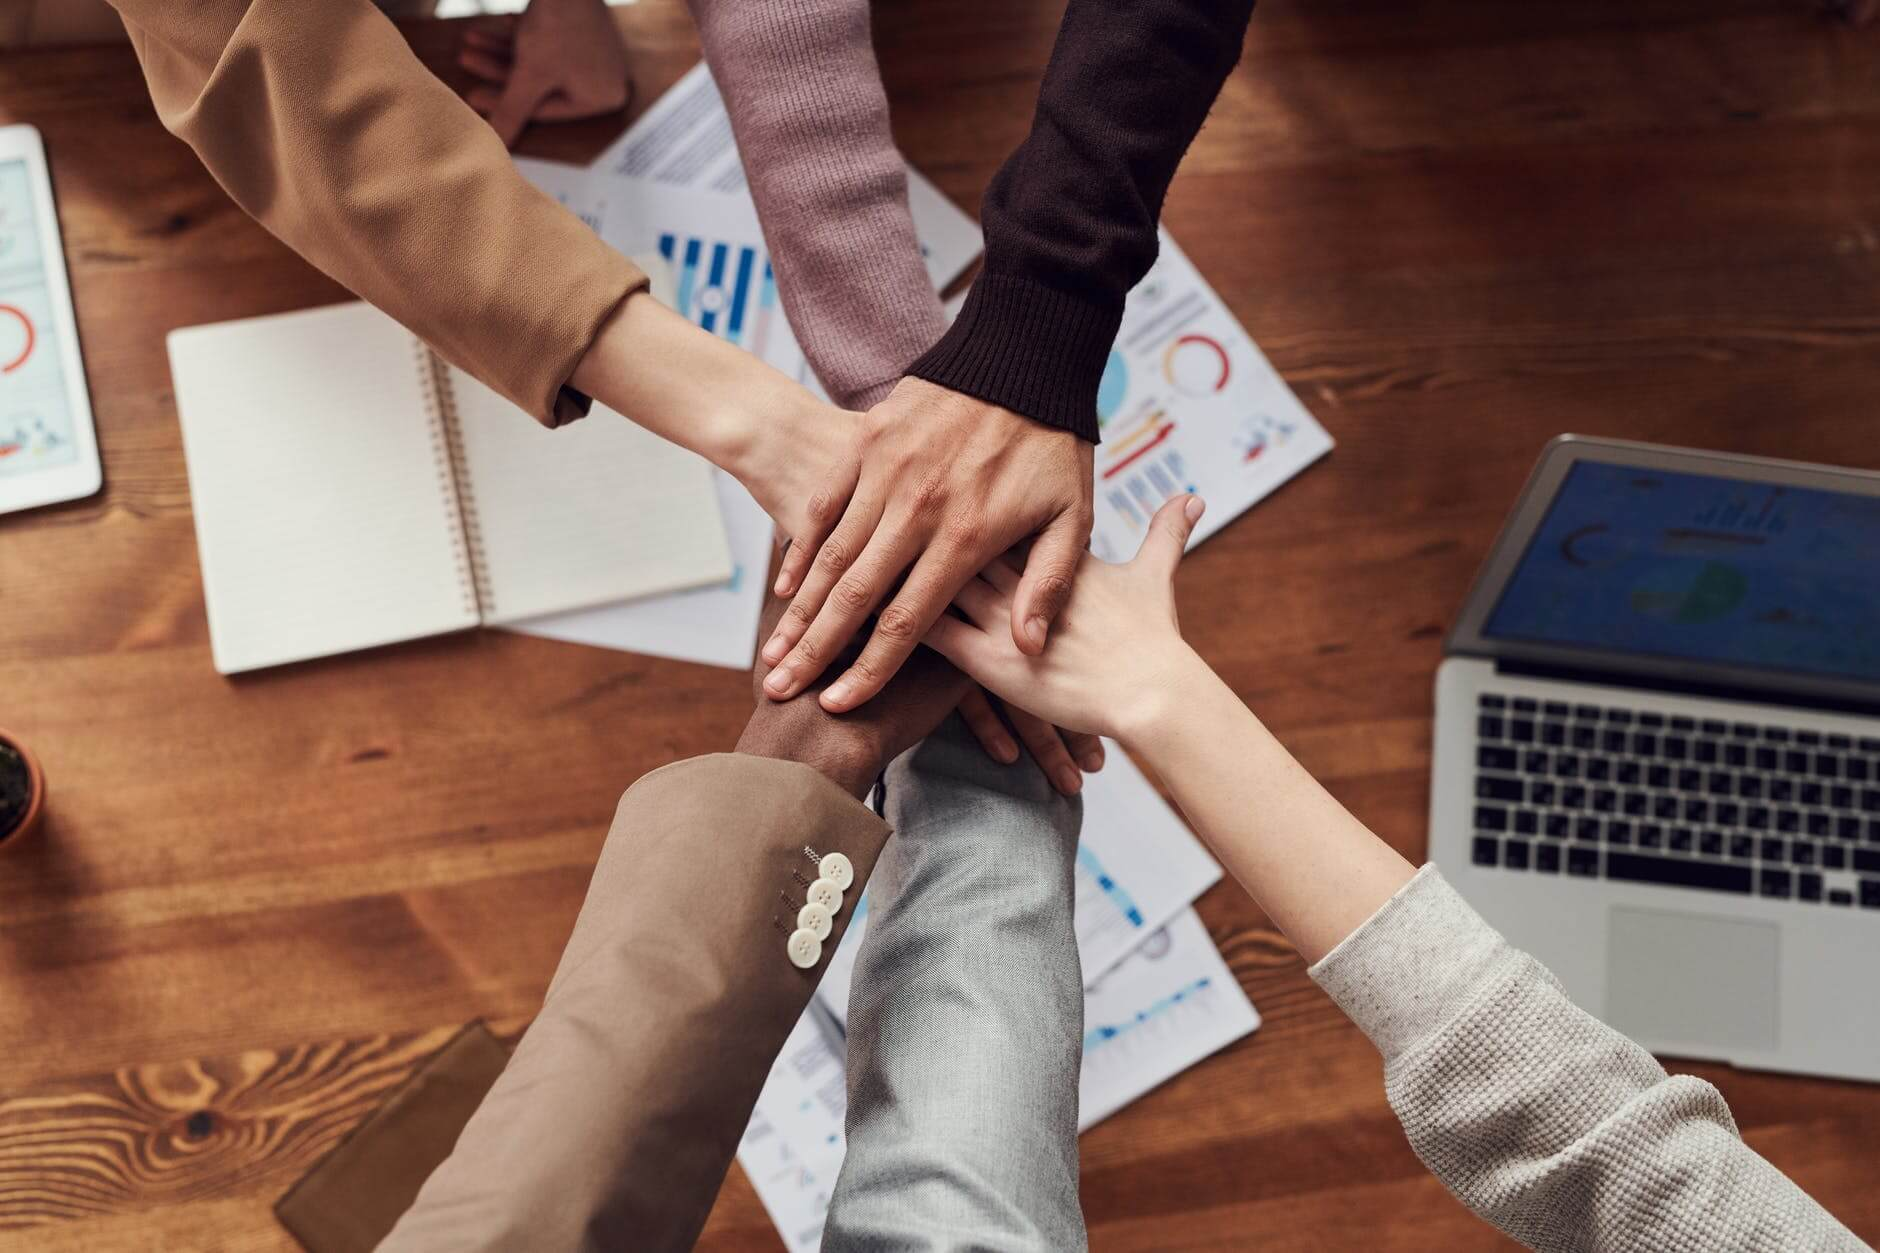 People are showing their willingness of collaboration within their team